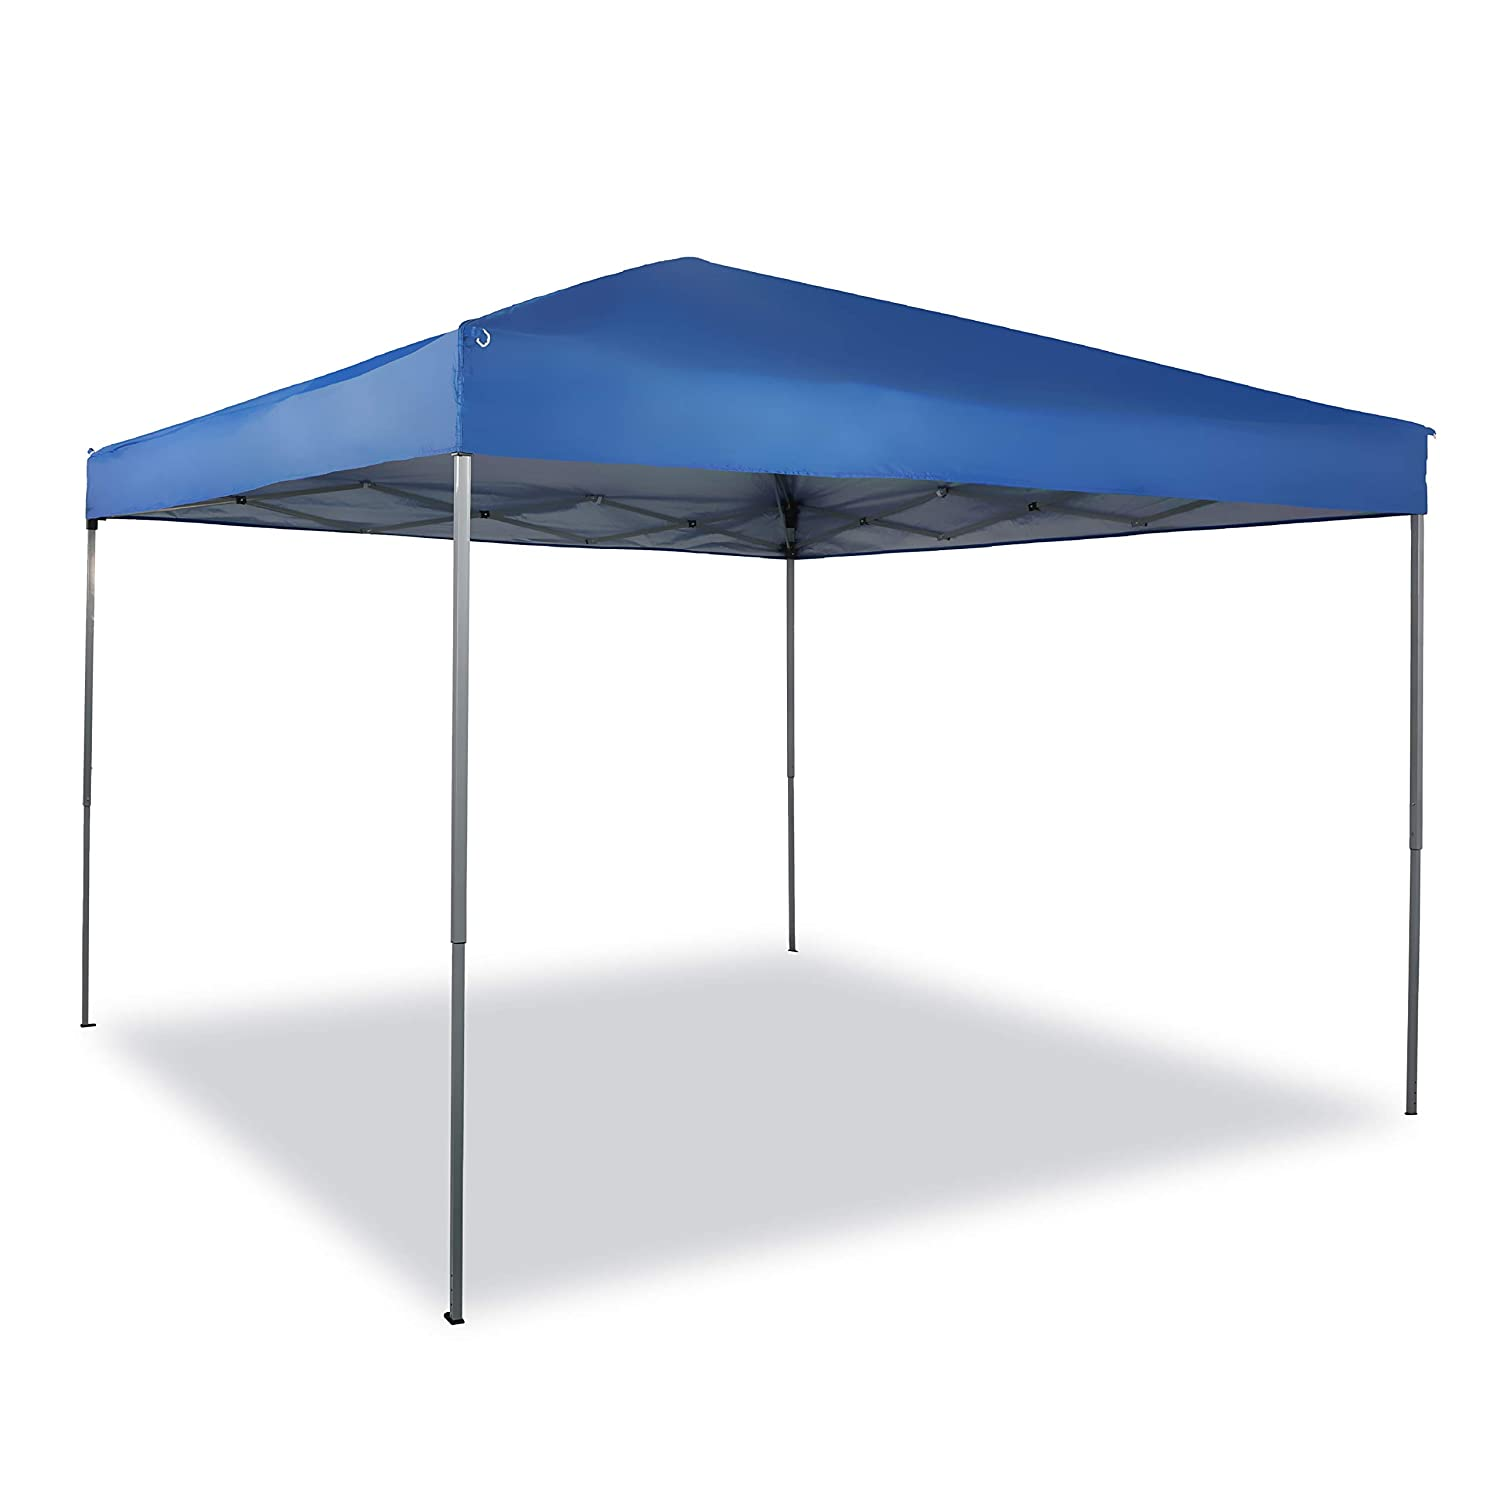 PHI VILLA 10 x 10ft Pop Up Canopy Event Tent Party Tent, 100 Sq. Ft of Shade, Blue